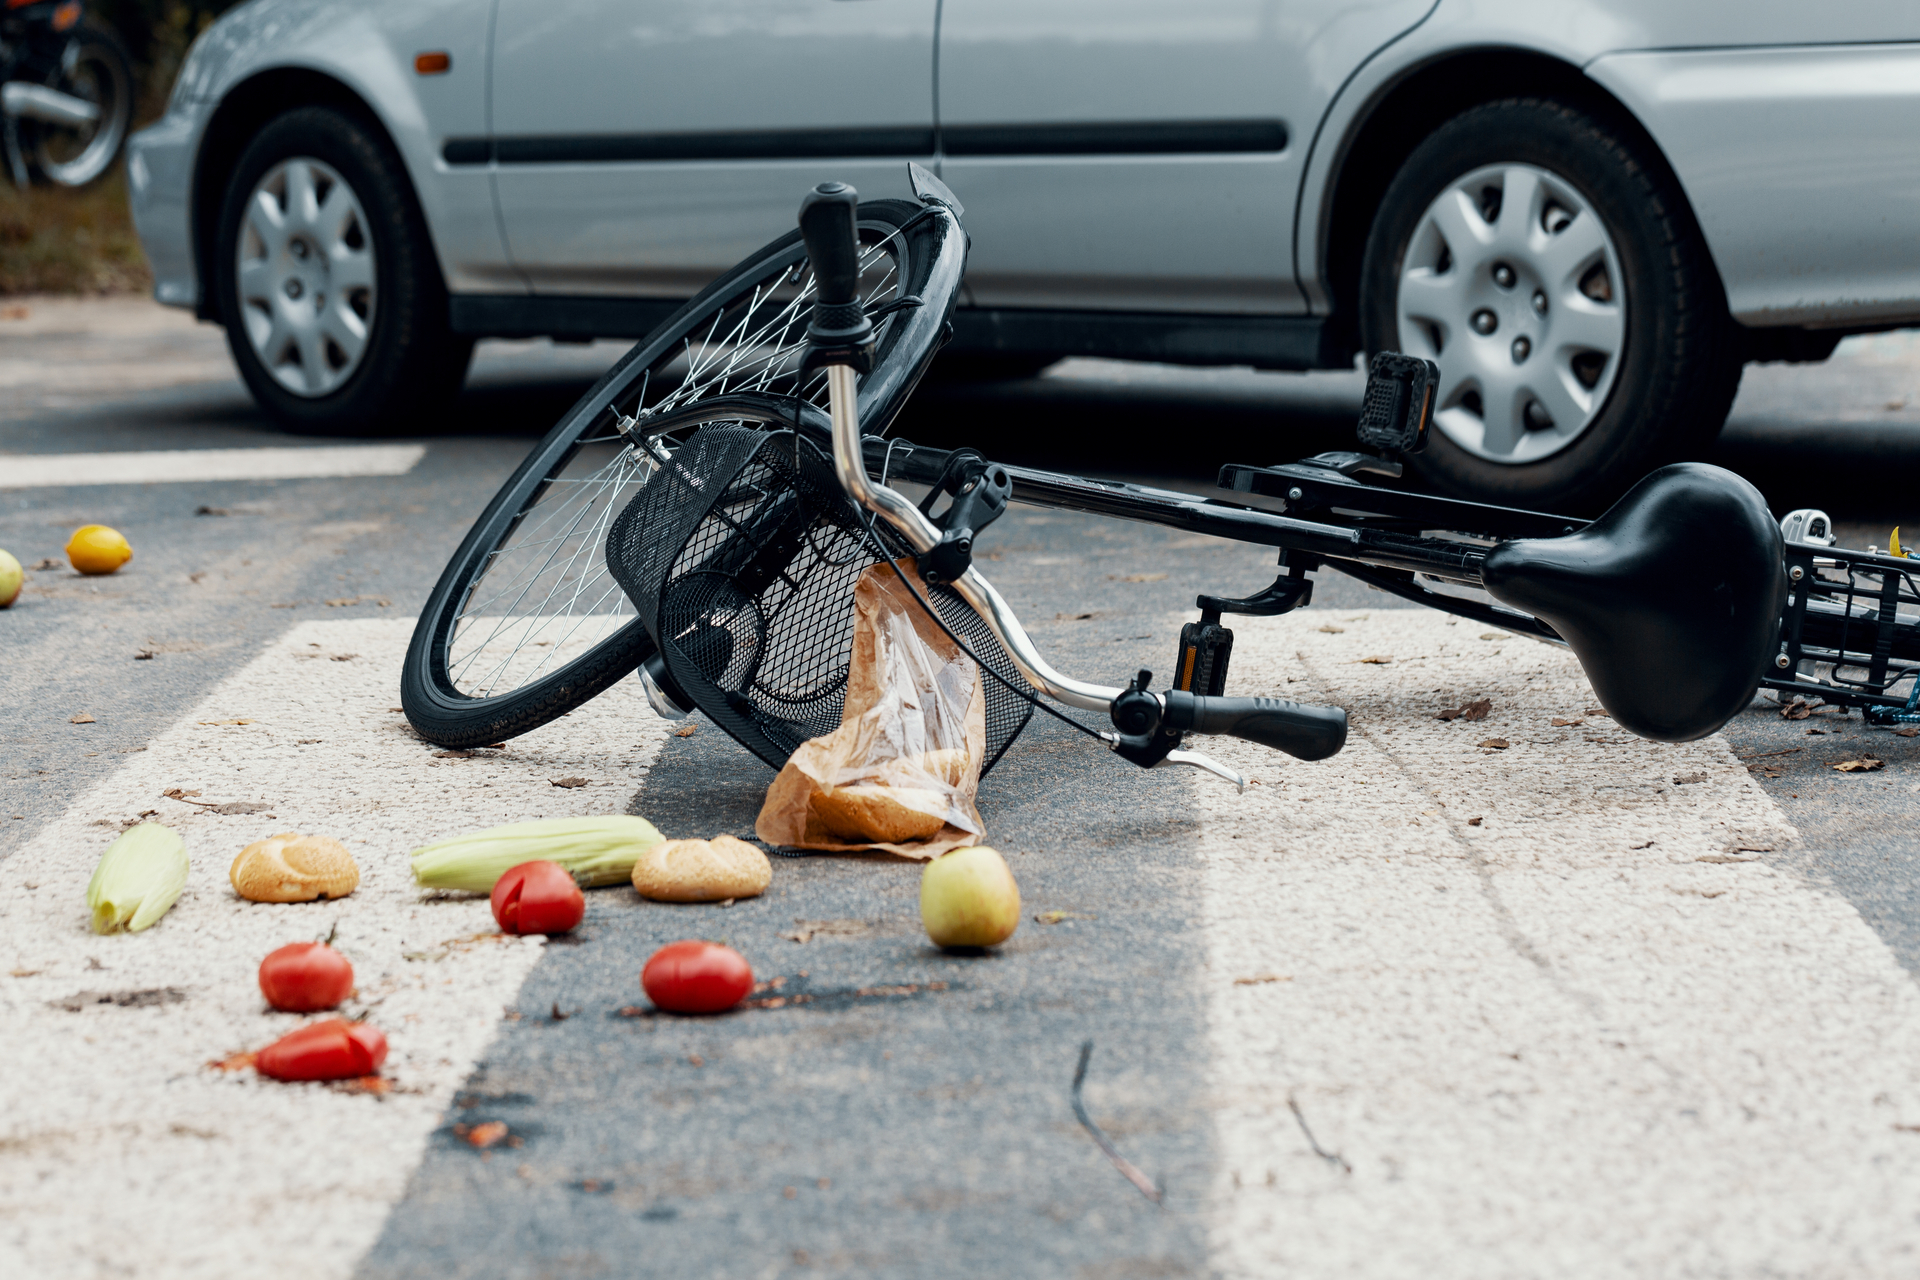 Groceries and broken bike on pedestrian crossing after collision with a car